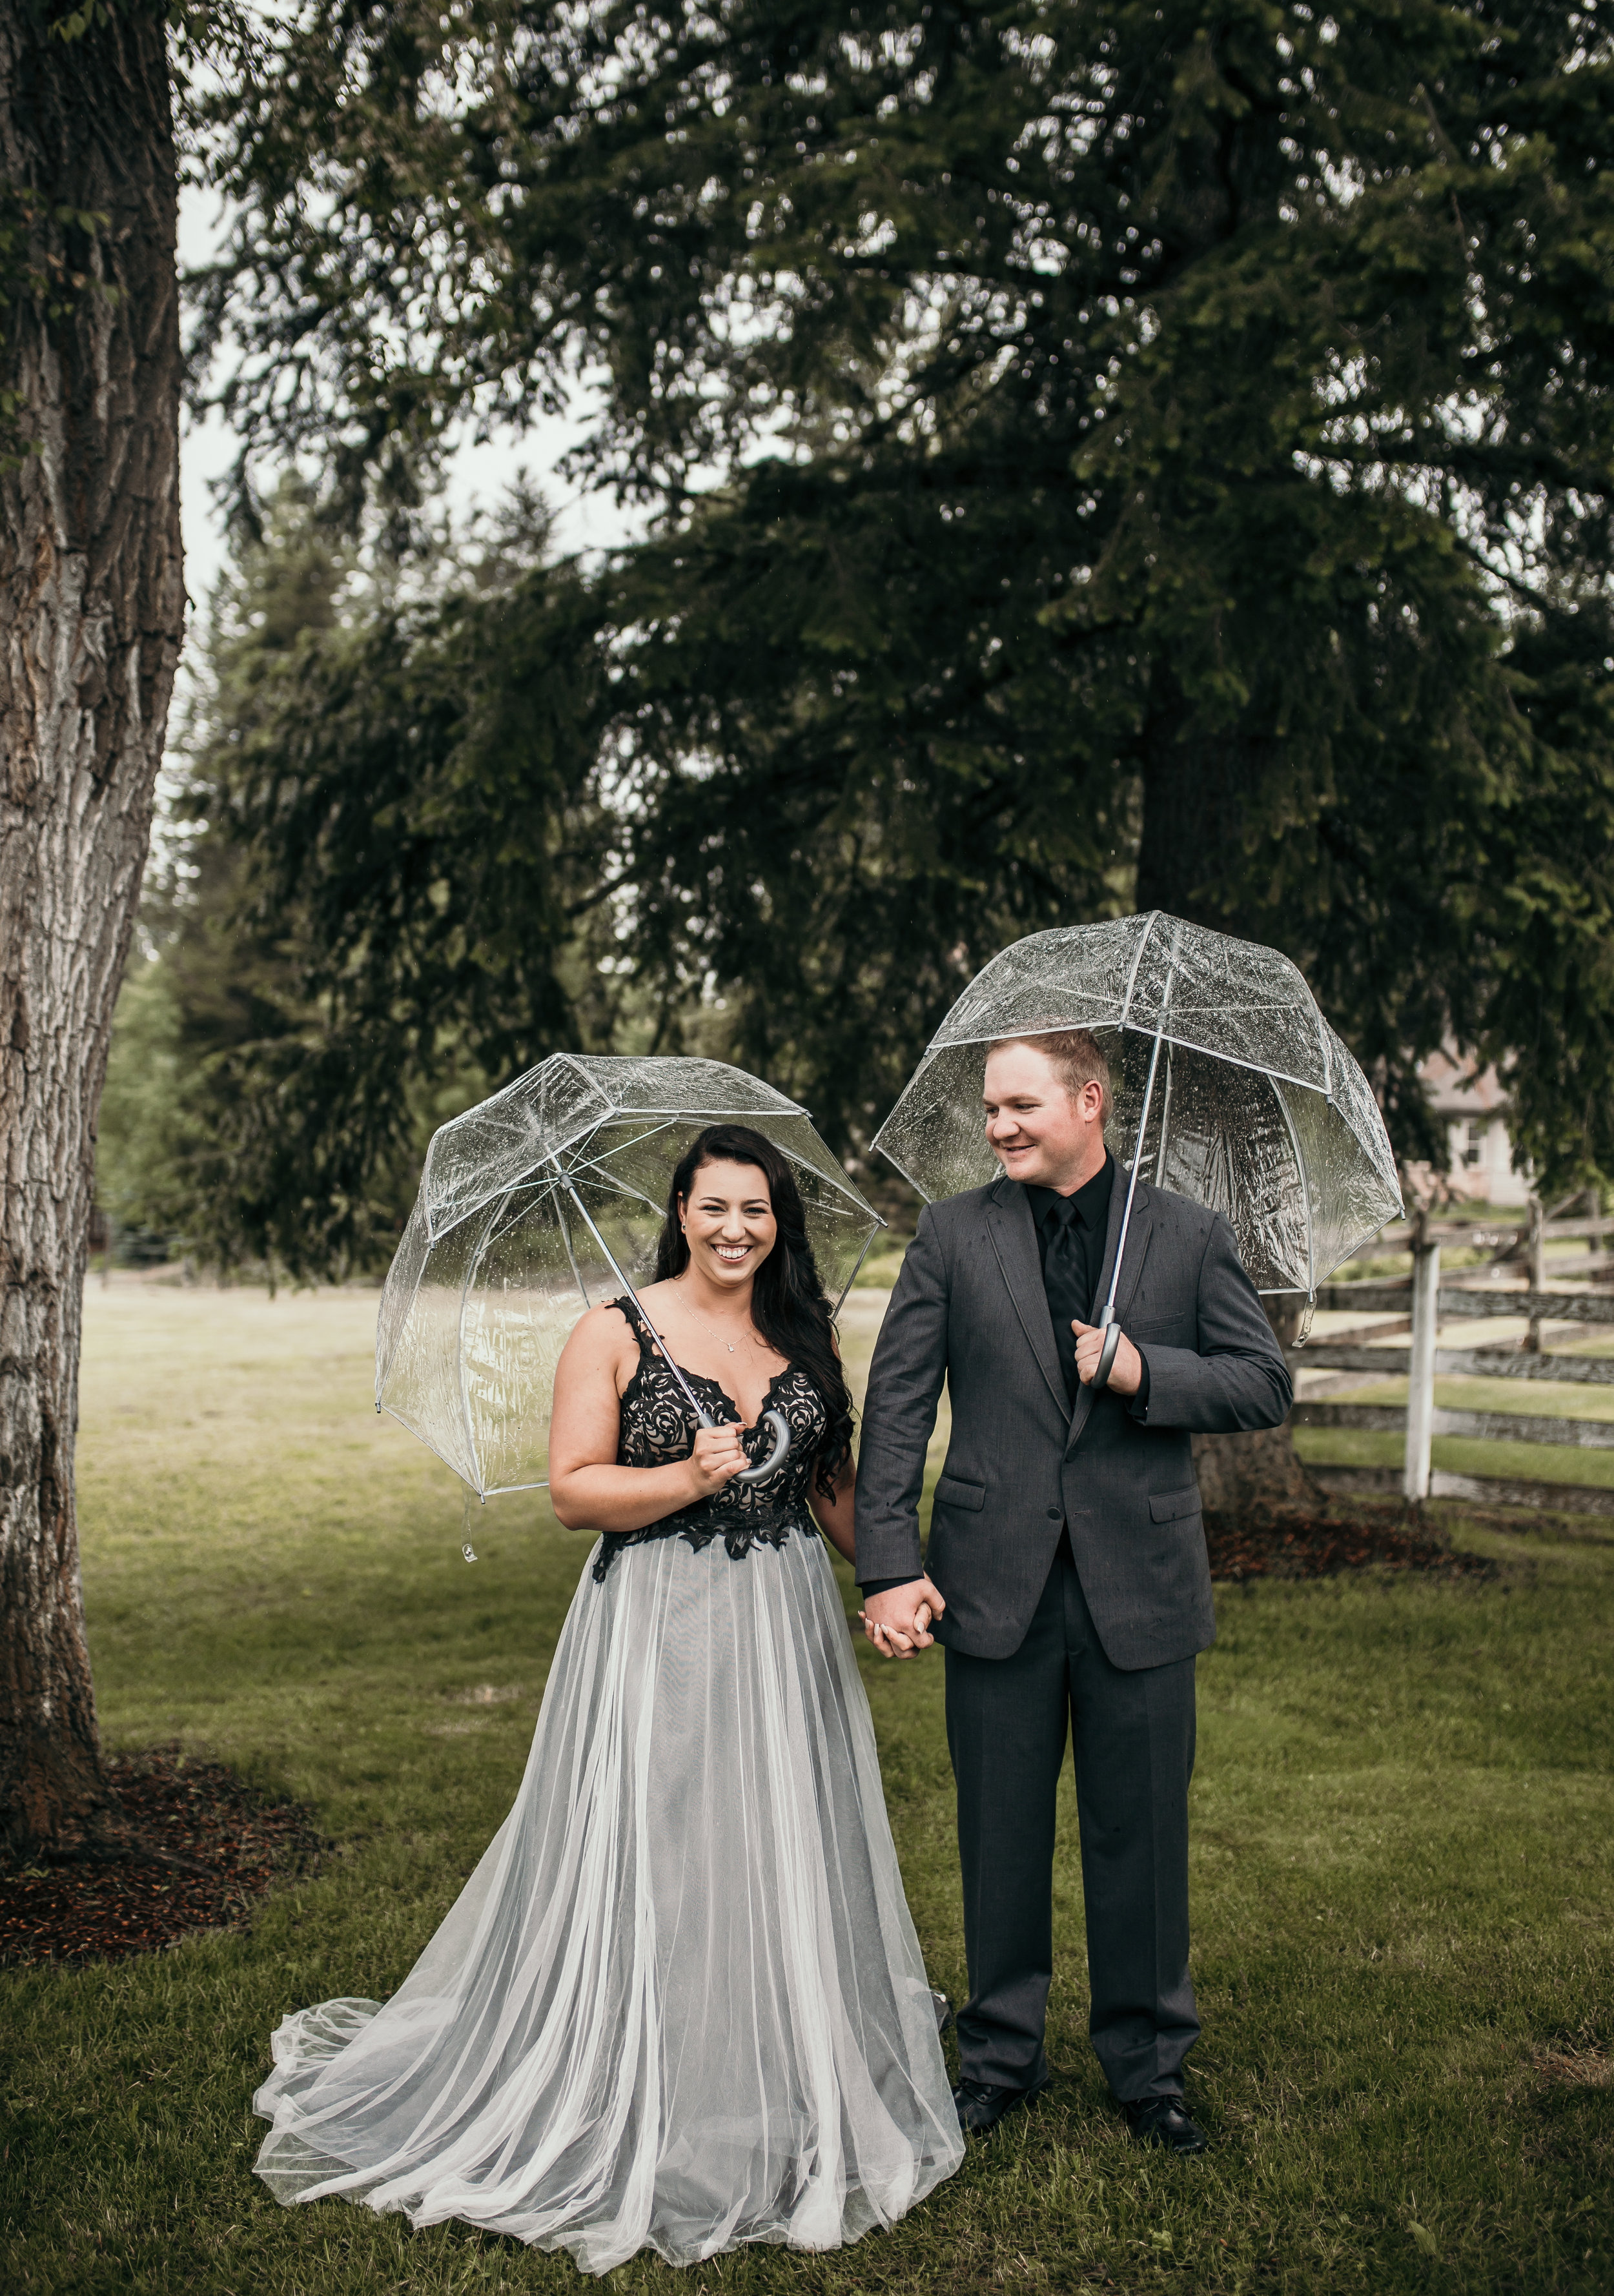 Rainy Wedding